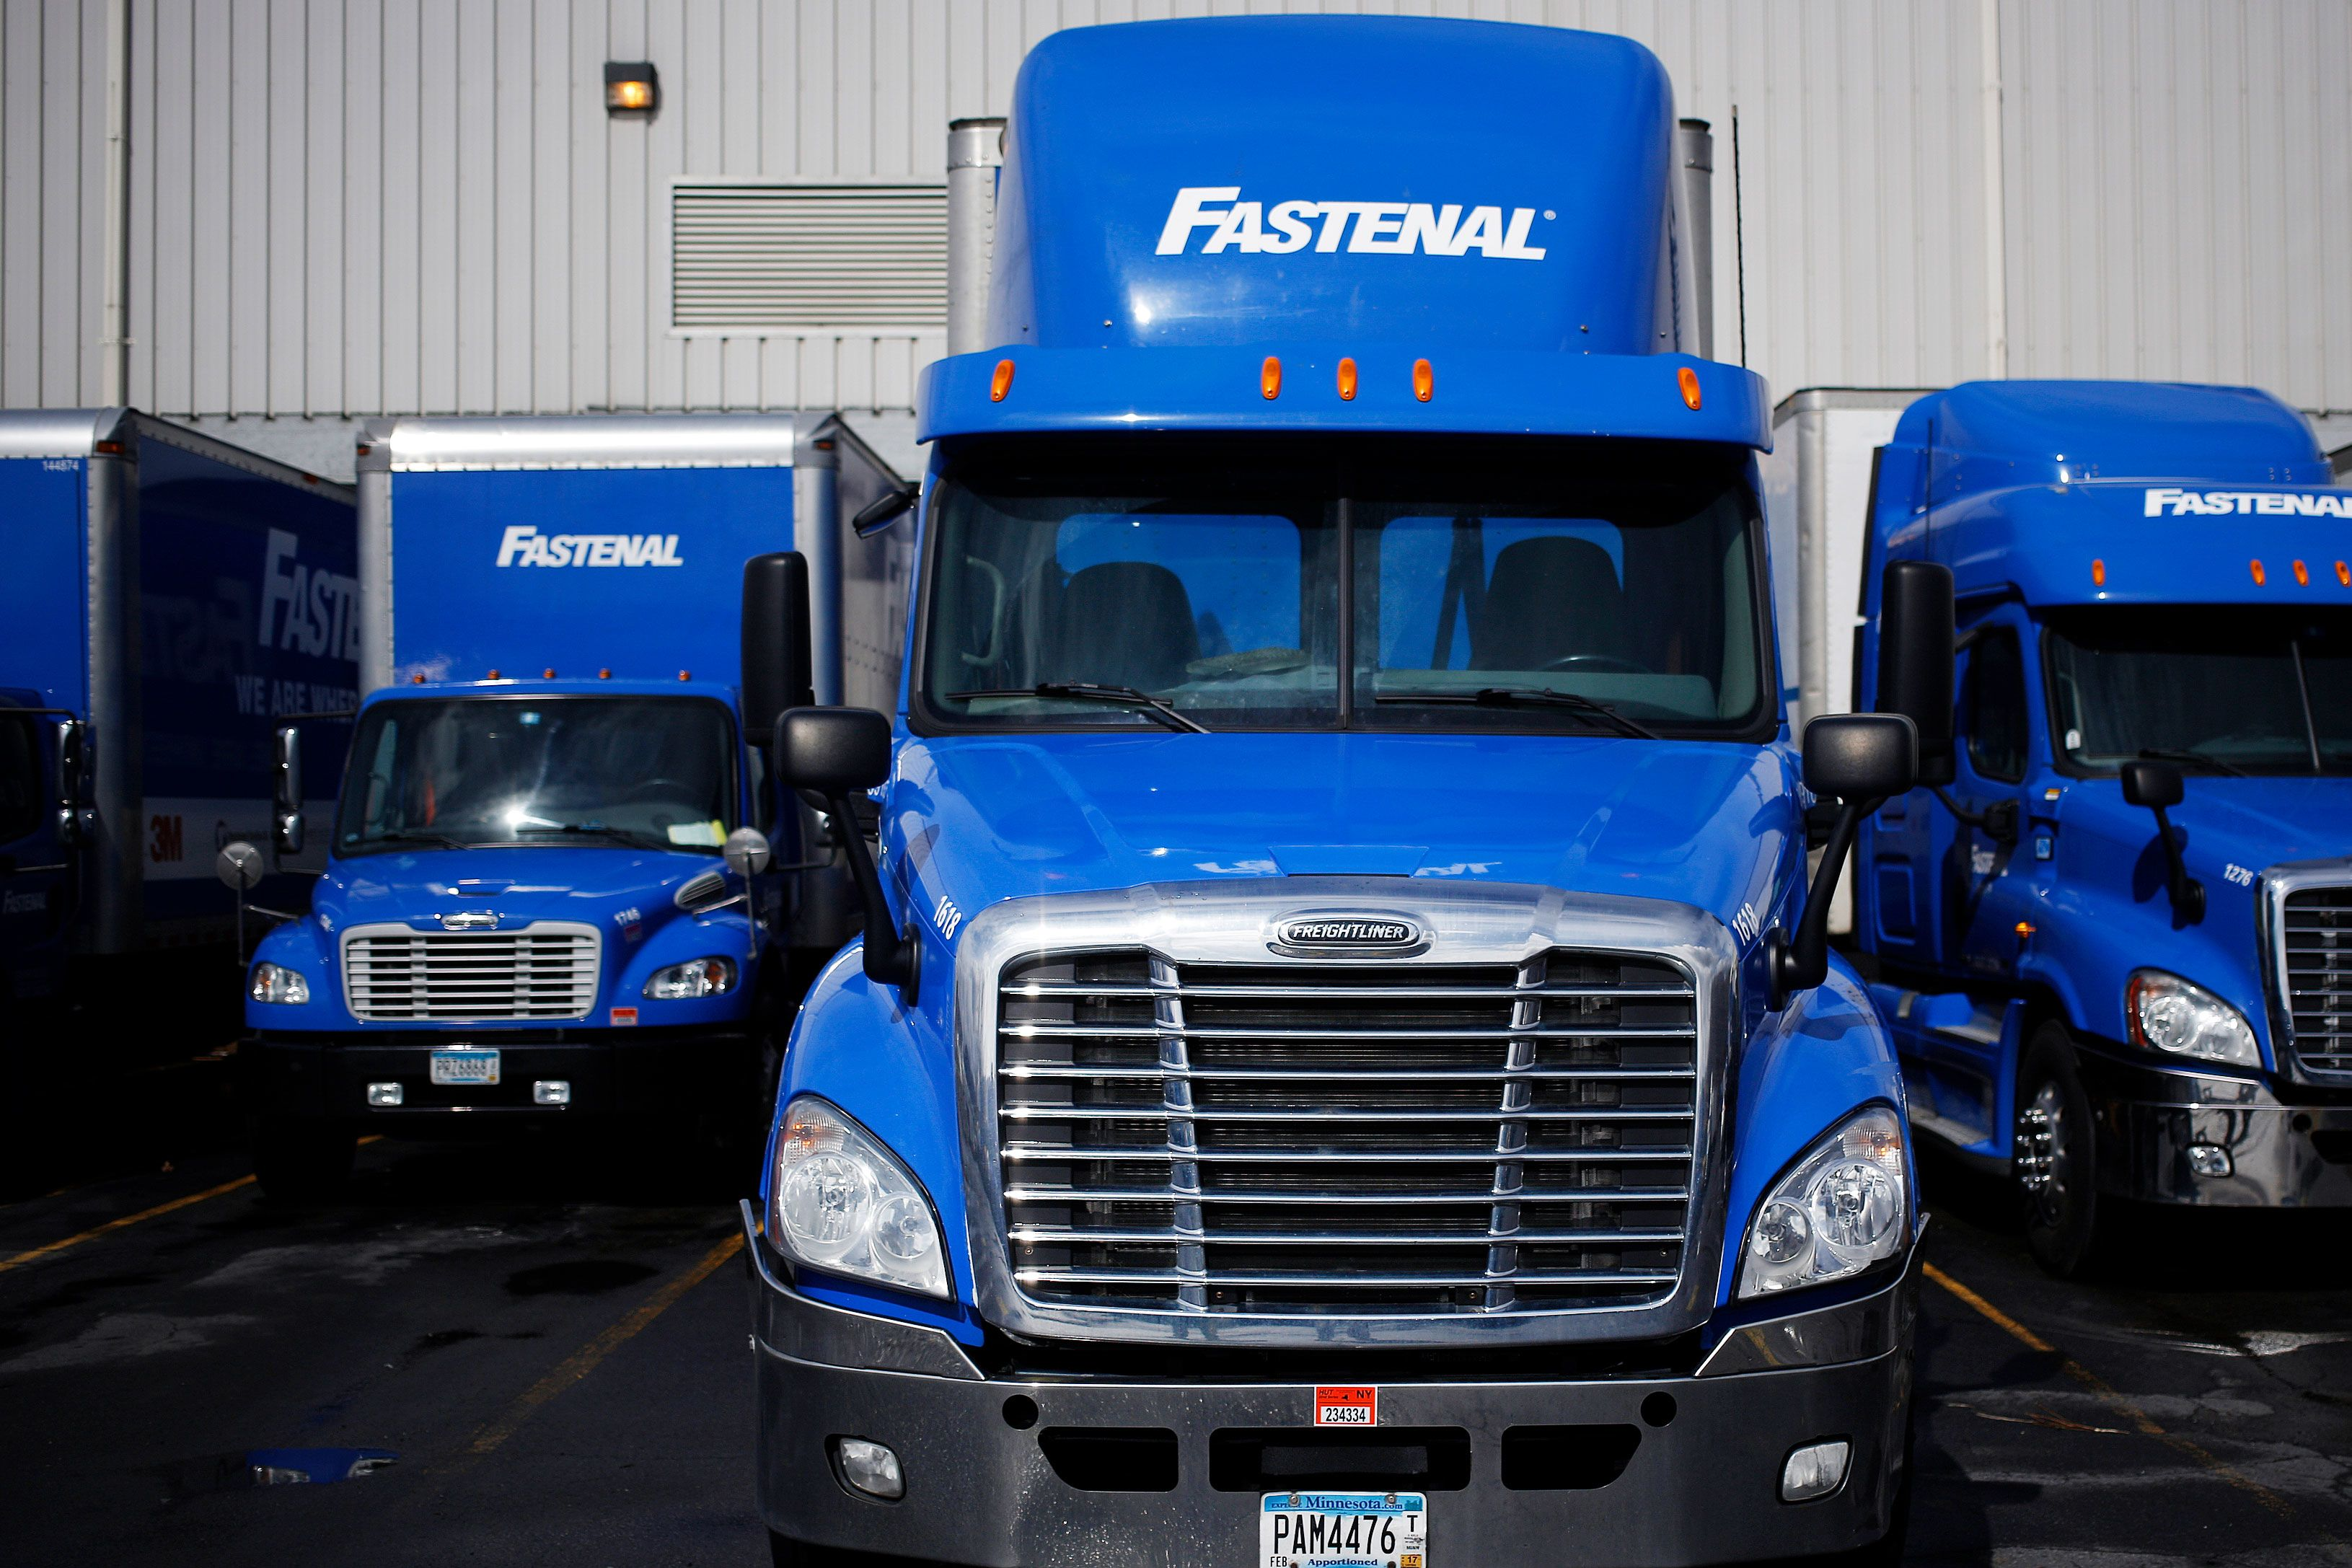 Fastenal just gave us a glimpse into this earnings season as it tanks on tariff costs